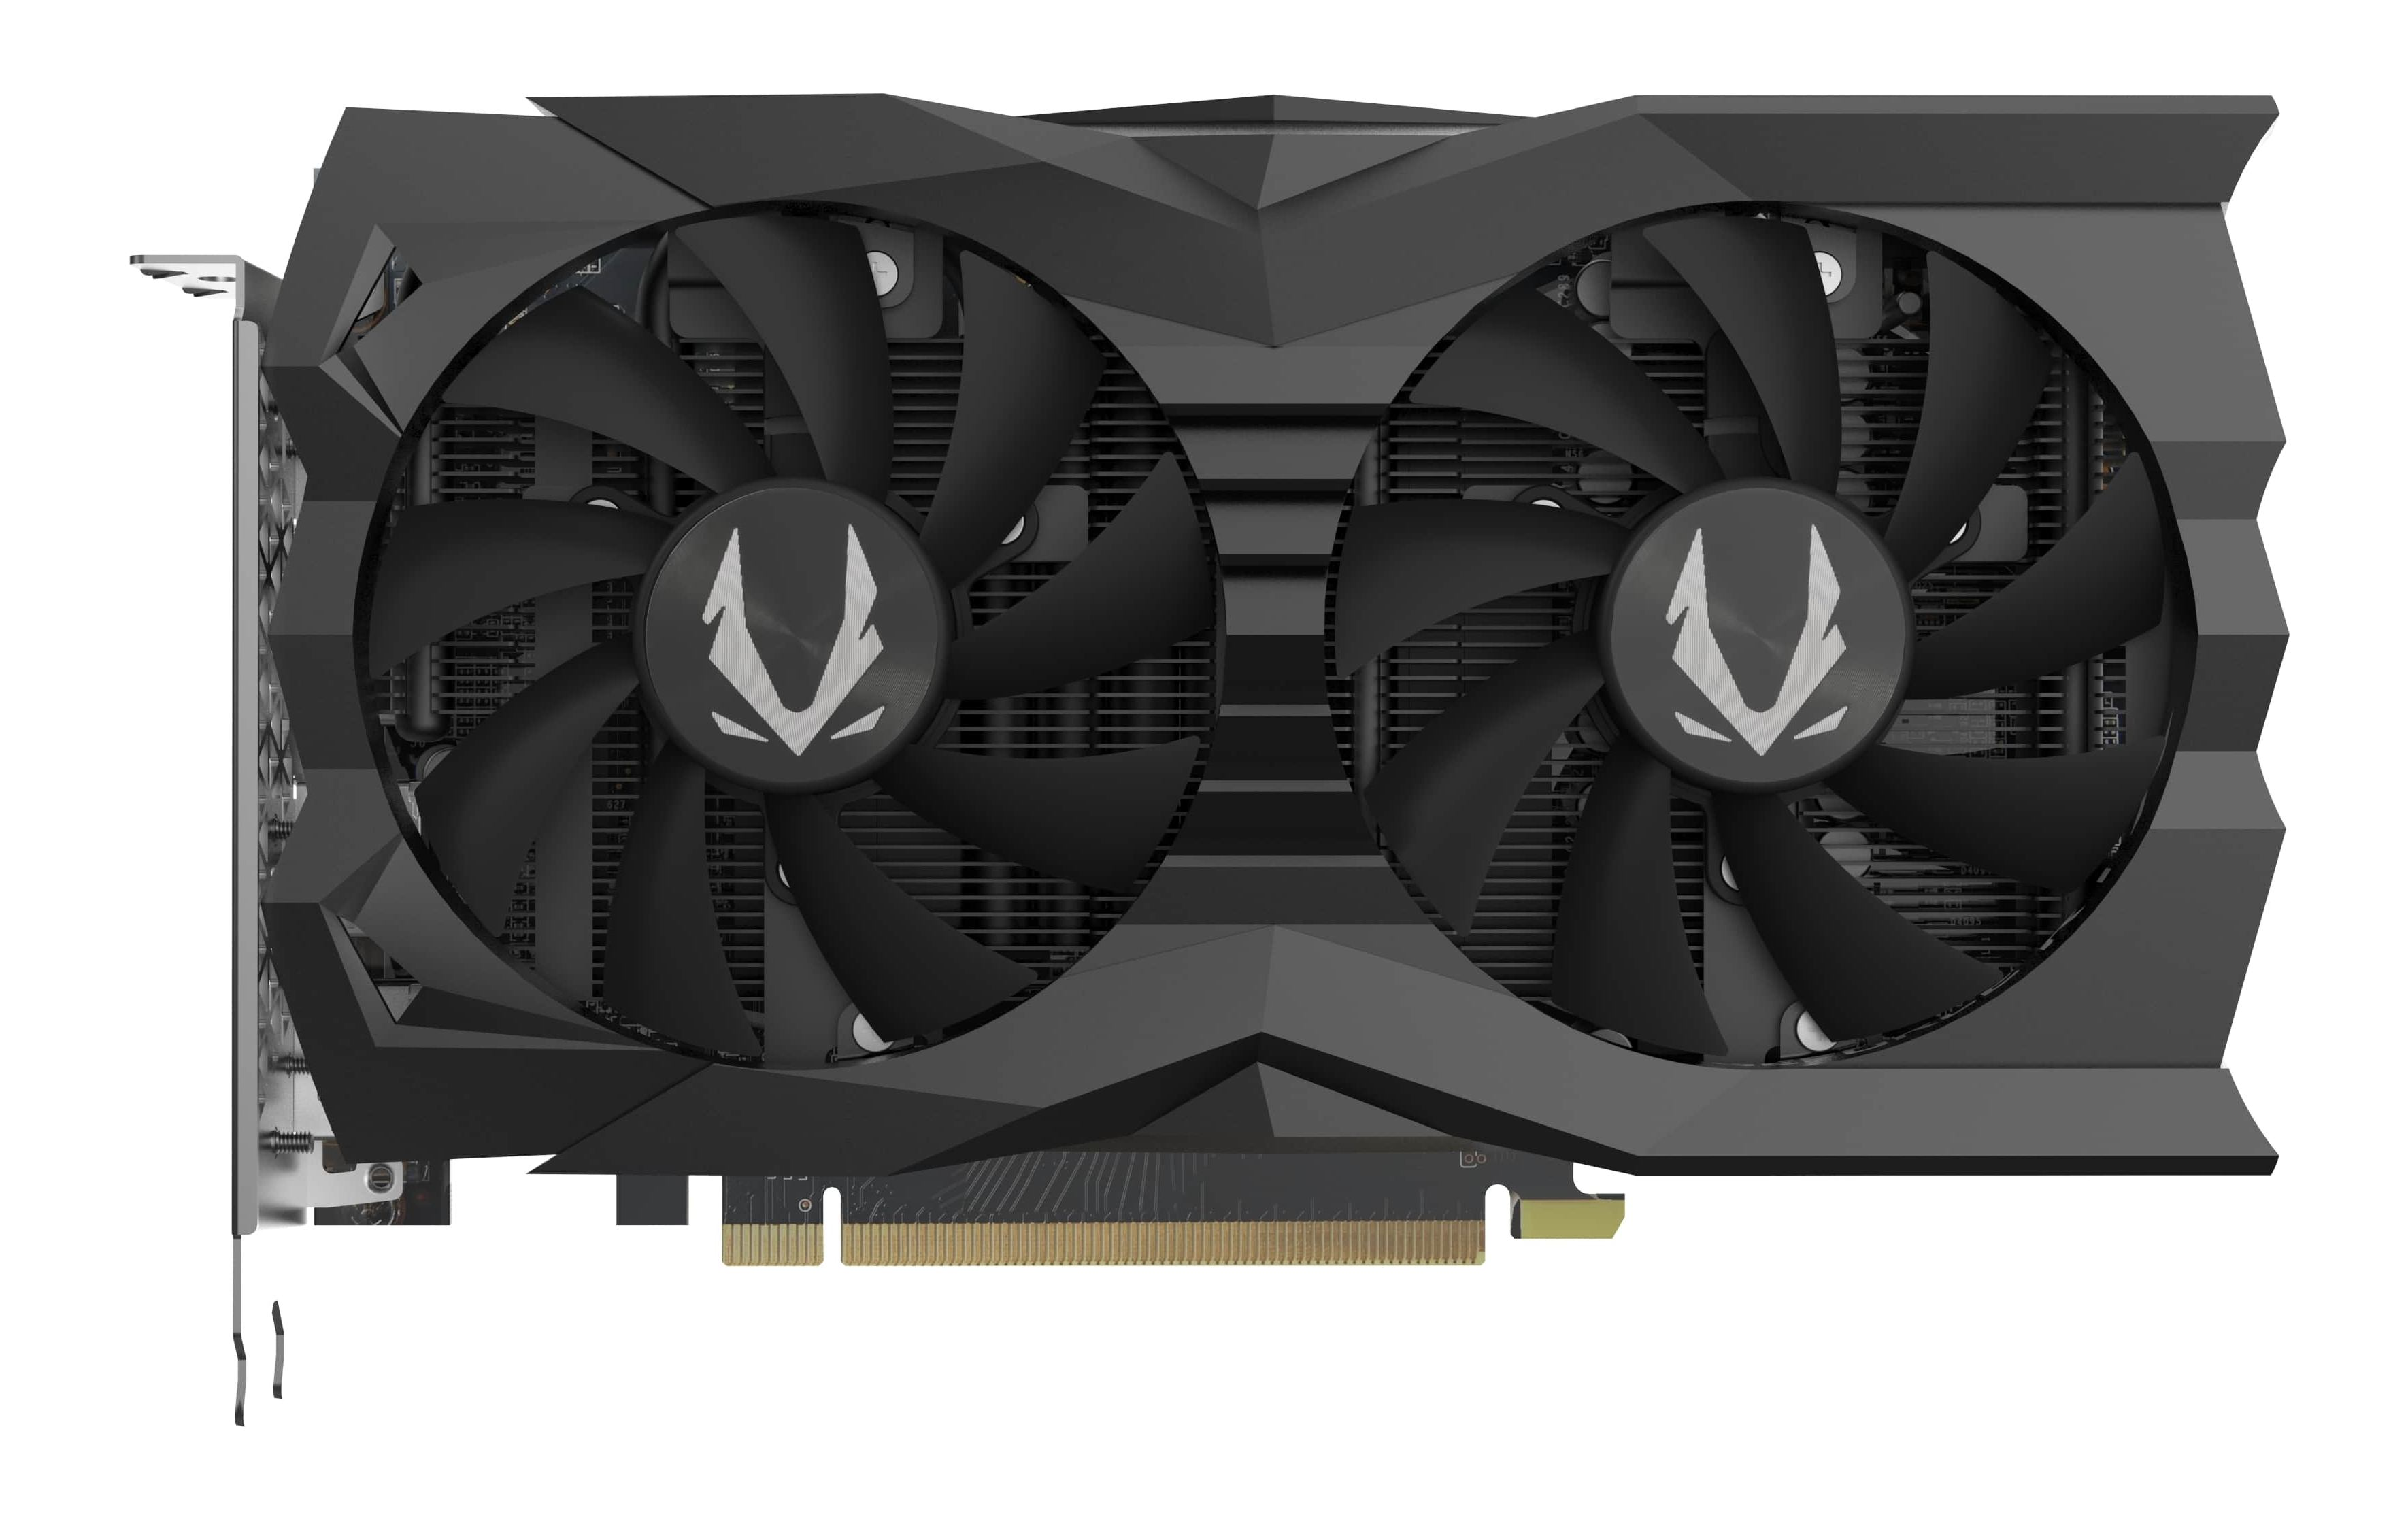 2061580-Zotac-GeForce-RTX-2070-SUPER-MINI-8GB-GDDR6-GF-RTX-2070-SUPER-MINI-NV